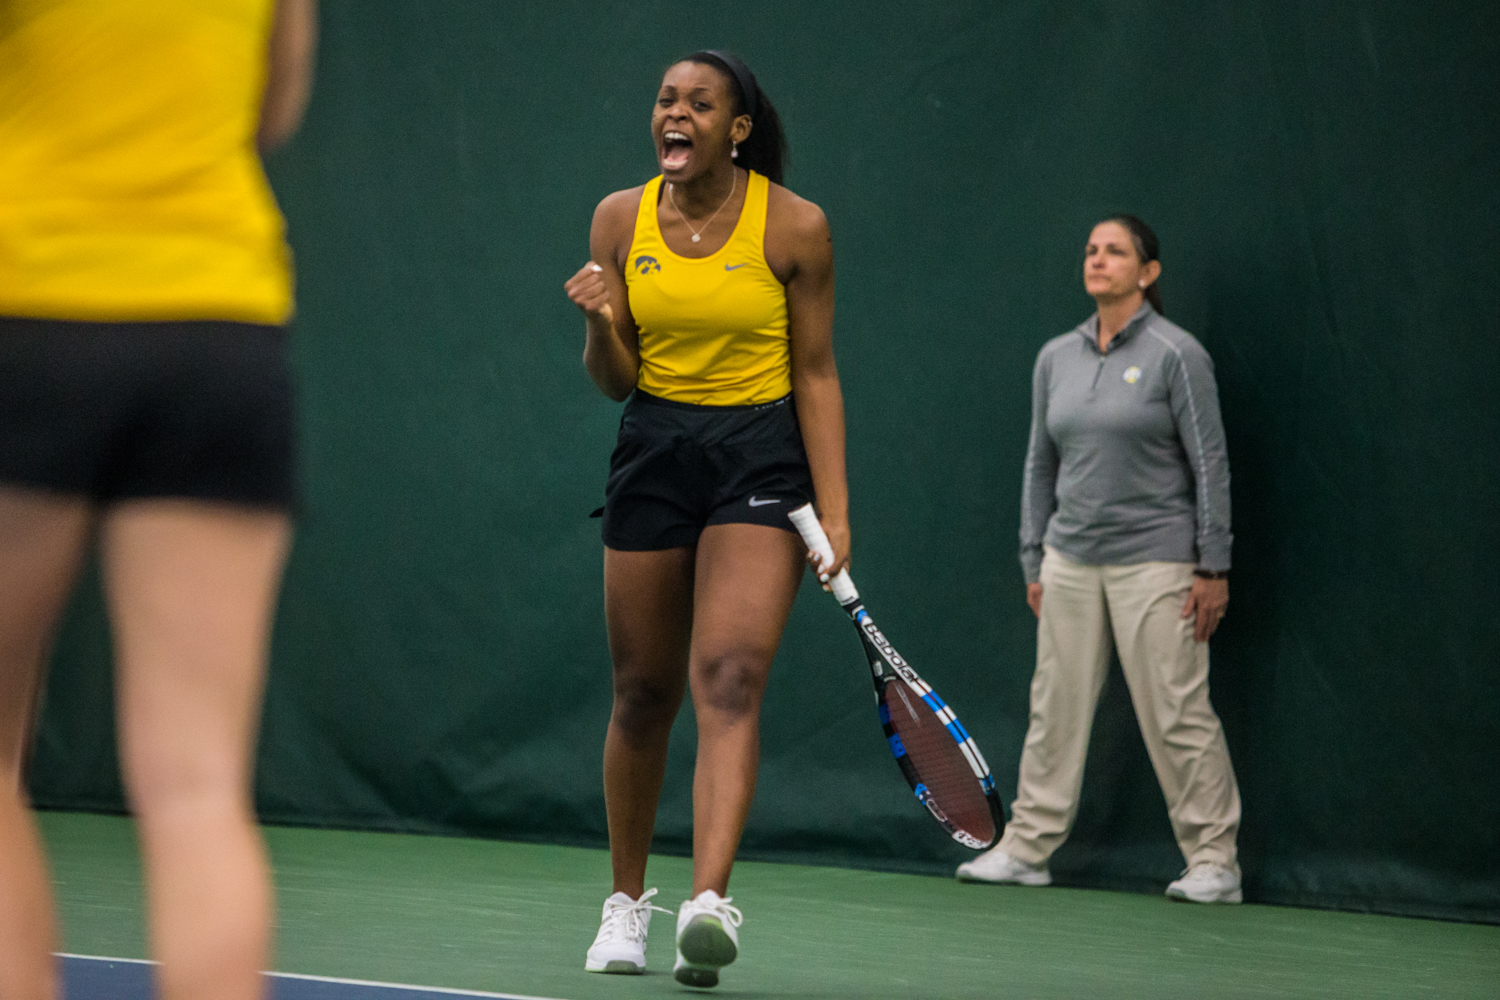 Iowa%27s+Adorabol+Huckleby+celebrates+after+a+point+during+a+women%27s+tennis+matchup+between+Iowa+and+Iowa+State+at+the+Hawkeye+Tennis+and+Recreation+Complex+on+Friday%2C+February+8%2C+2019.++The+Hawkeyes+dropped+the+doubles+point+but+swept+singles+matches%2C+defeating+the+Cyclones+4-1.